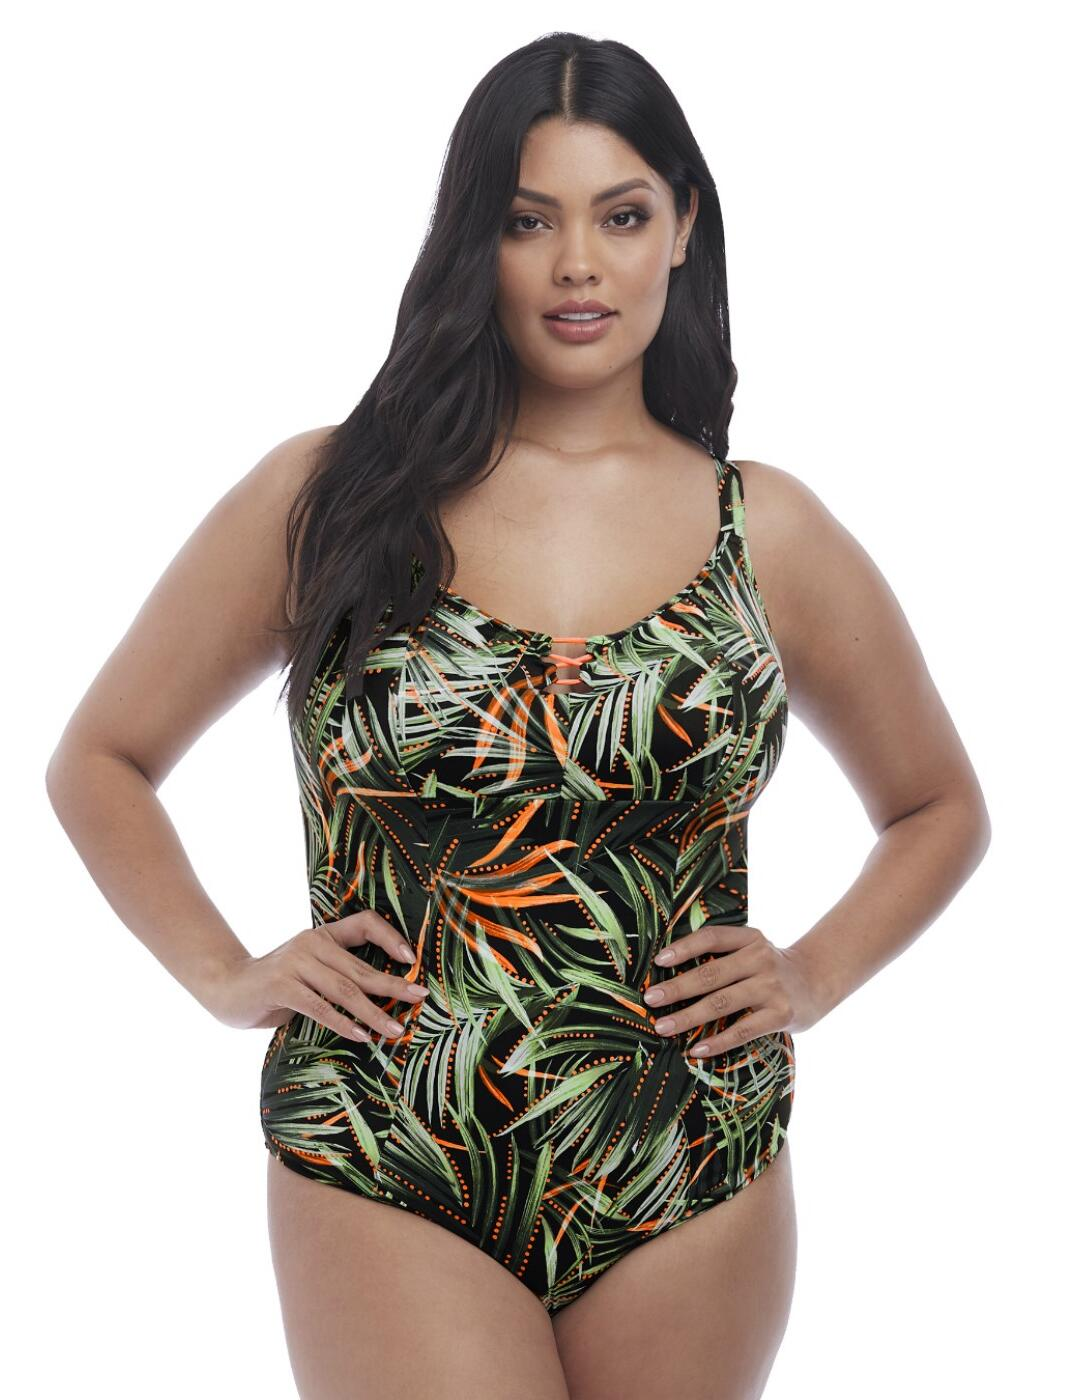 7160 Elomi Amazonia Moulded Swimsuit - 7160 Khaki Print